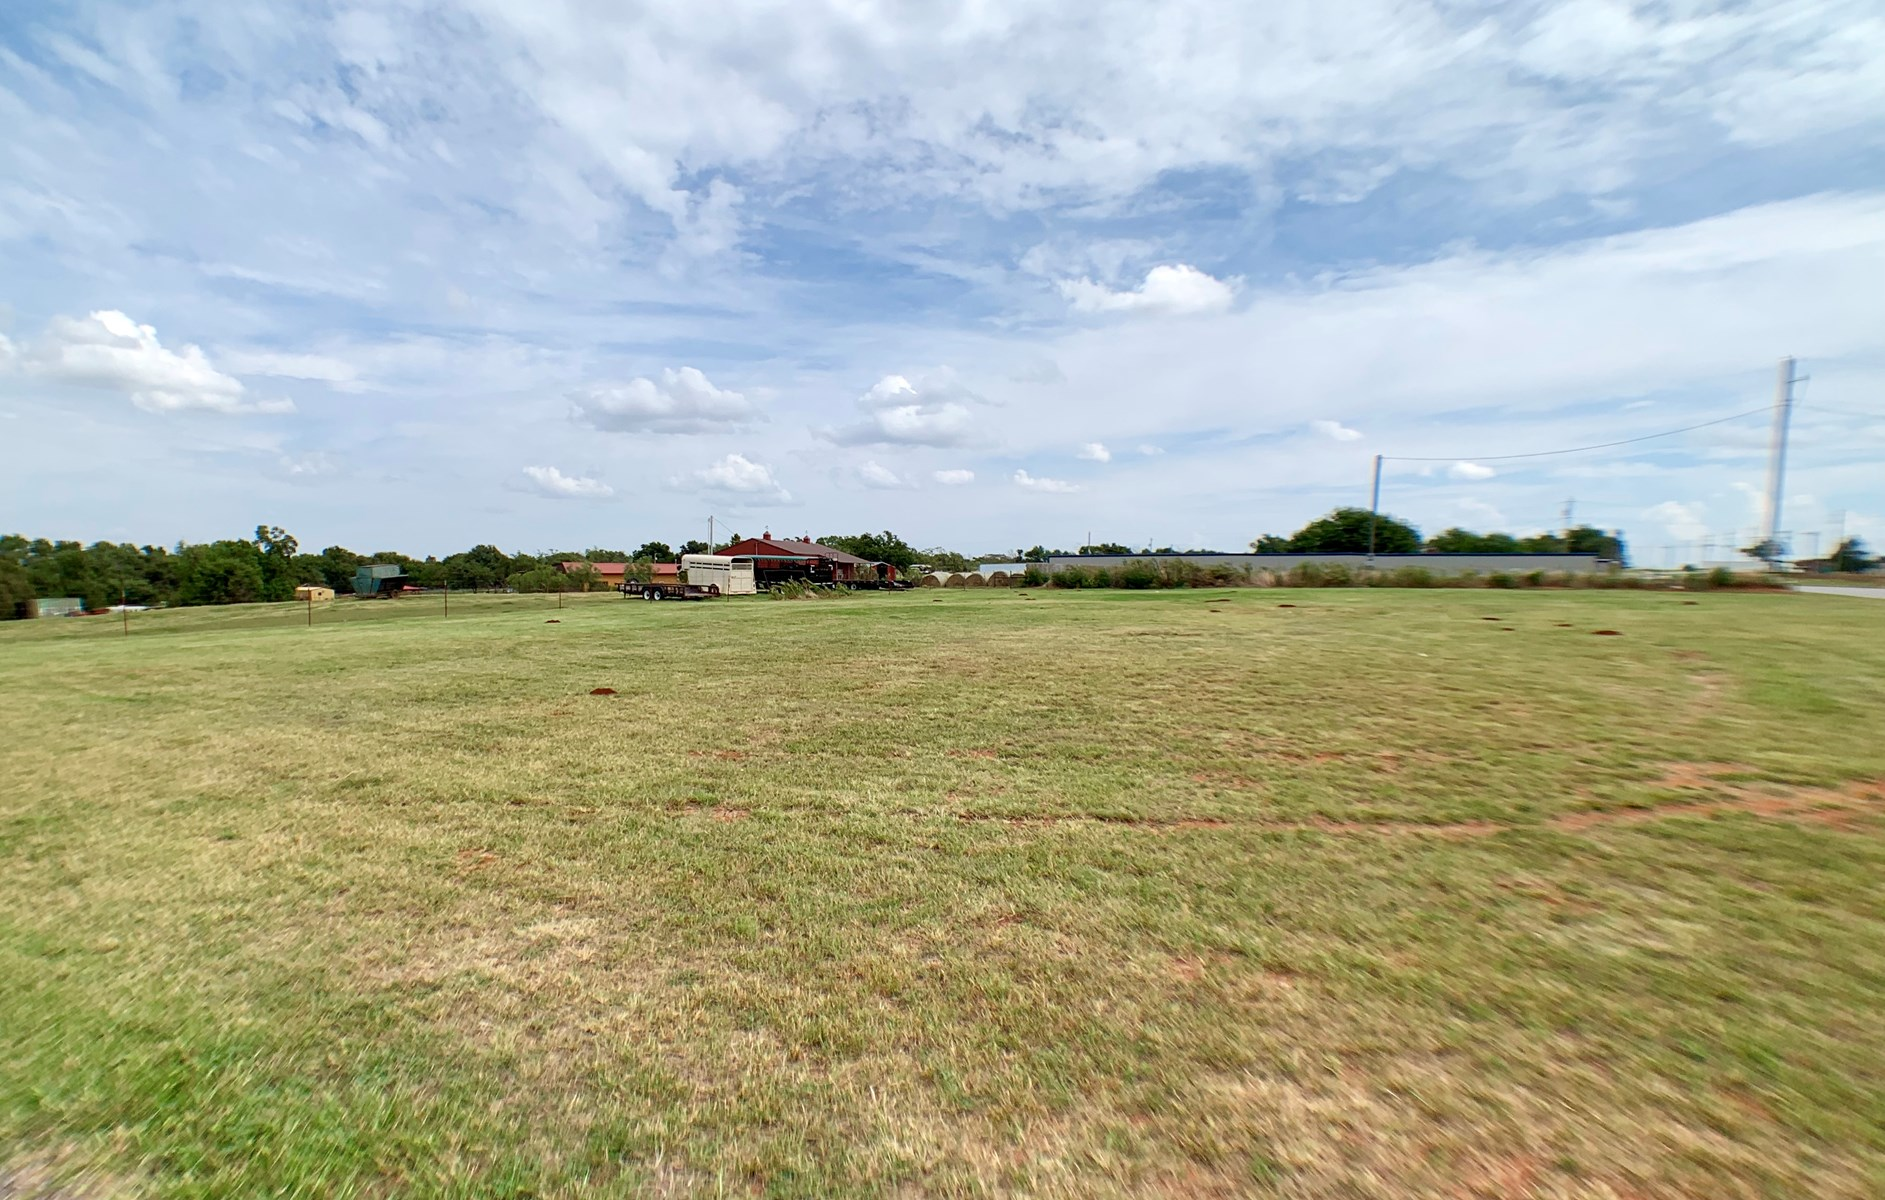 LAND FOR SALE OFF 140 ZONED COMMERICIAL